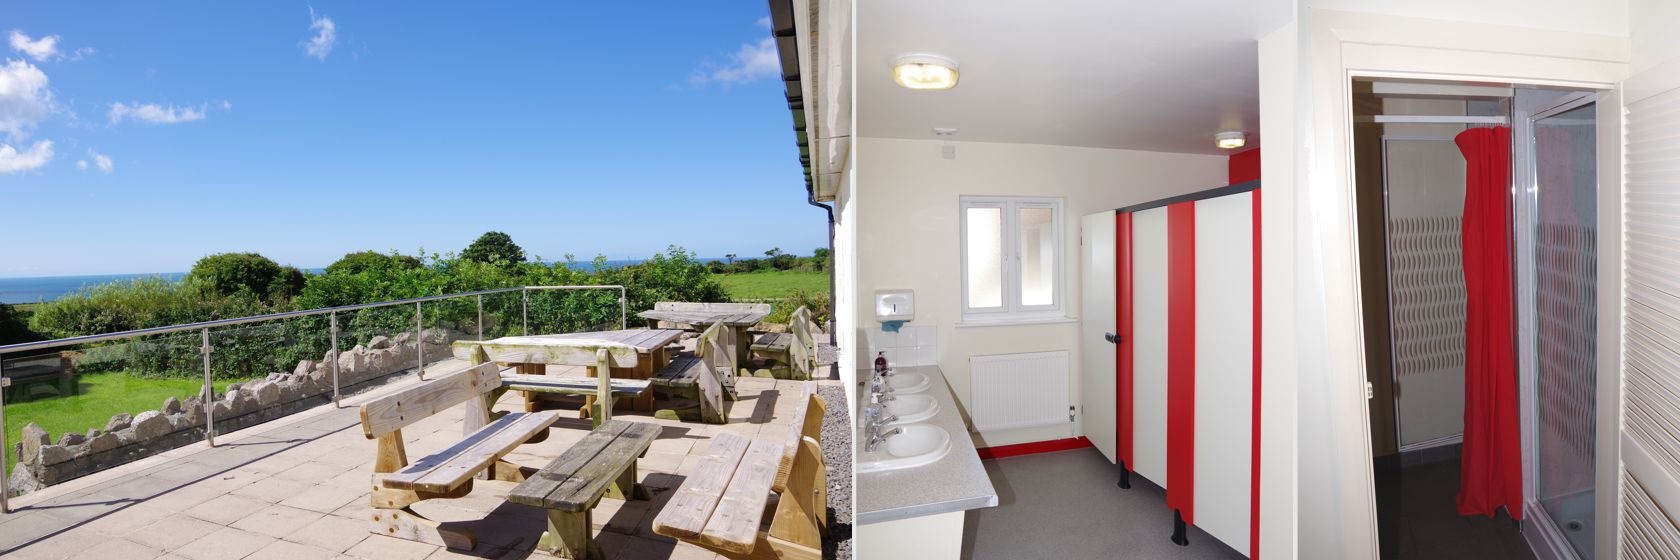 Quality facilities for group accommodation